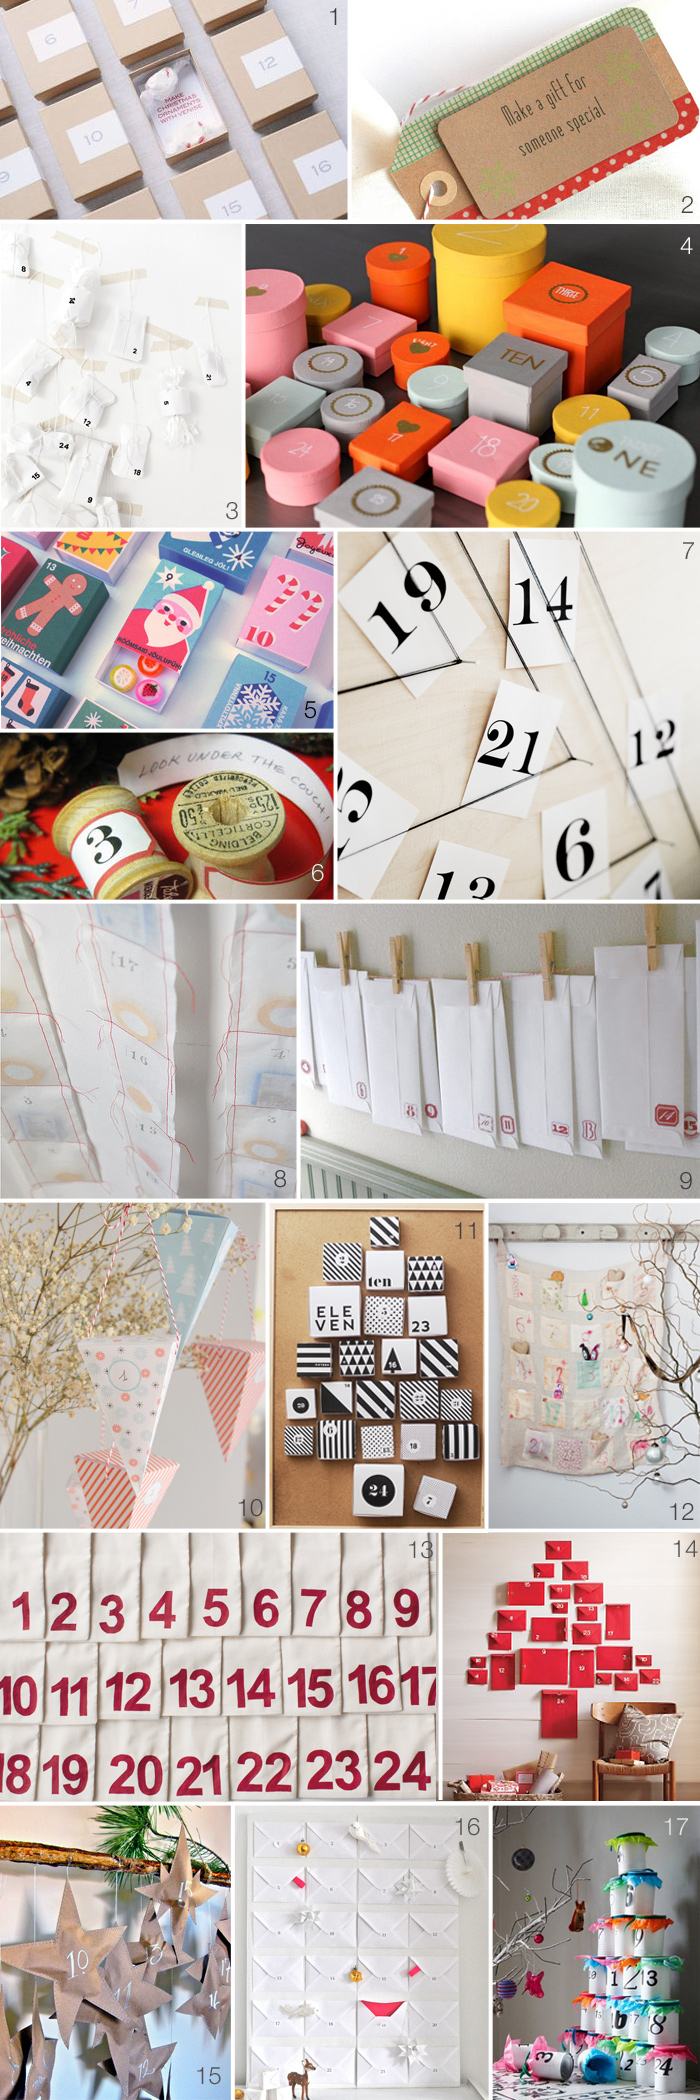 DIYAdventCalendars DIY Advent Calendars